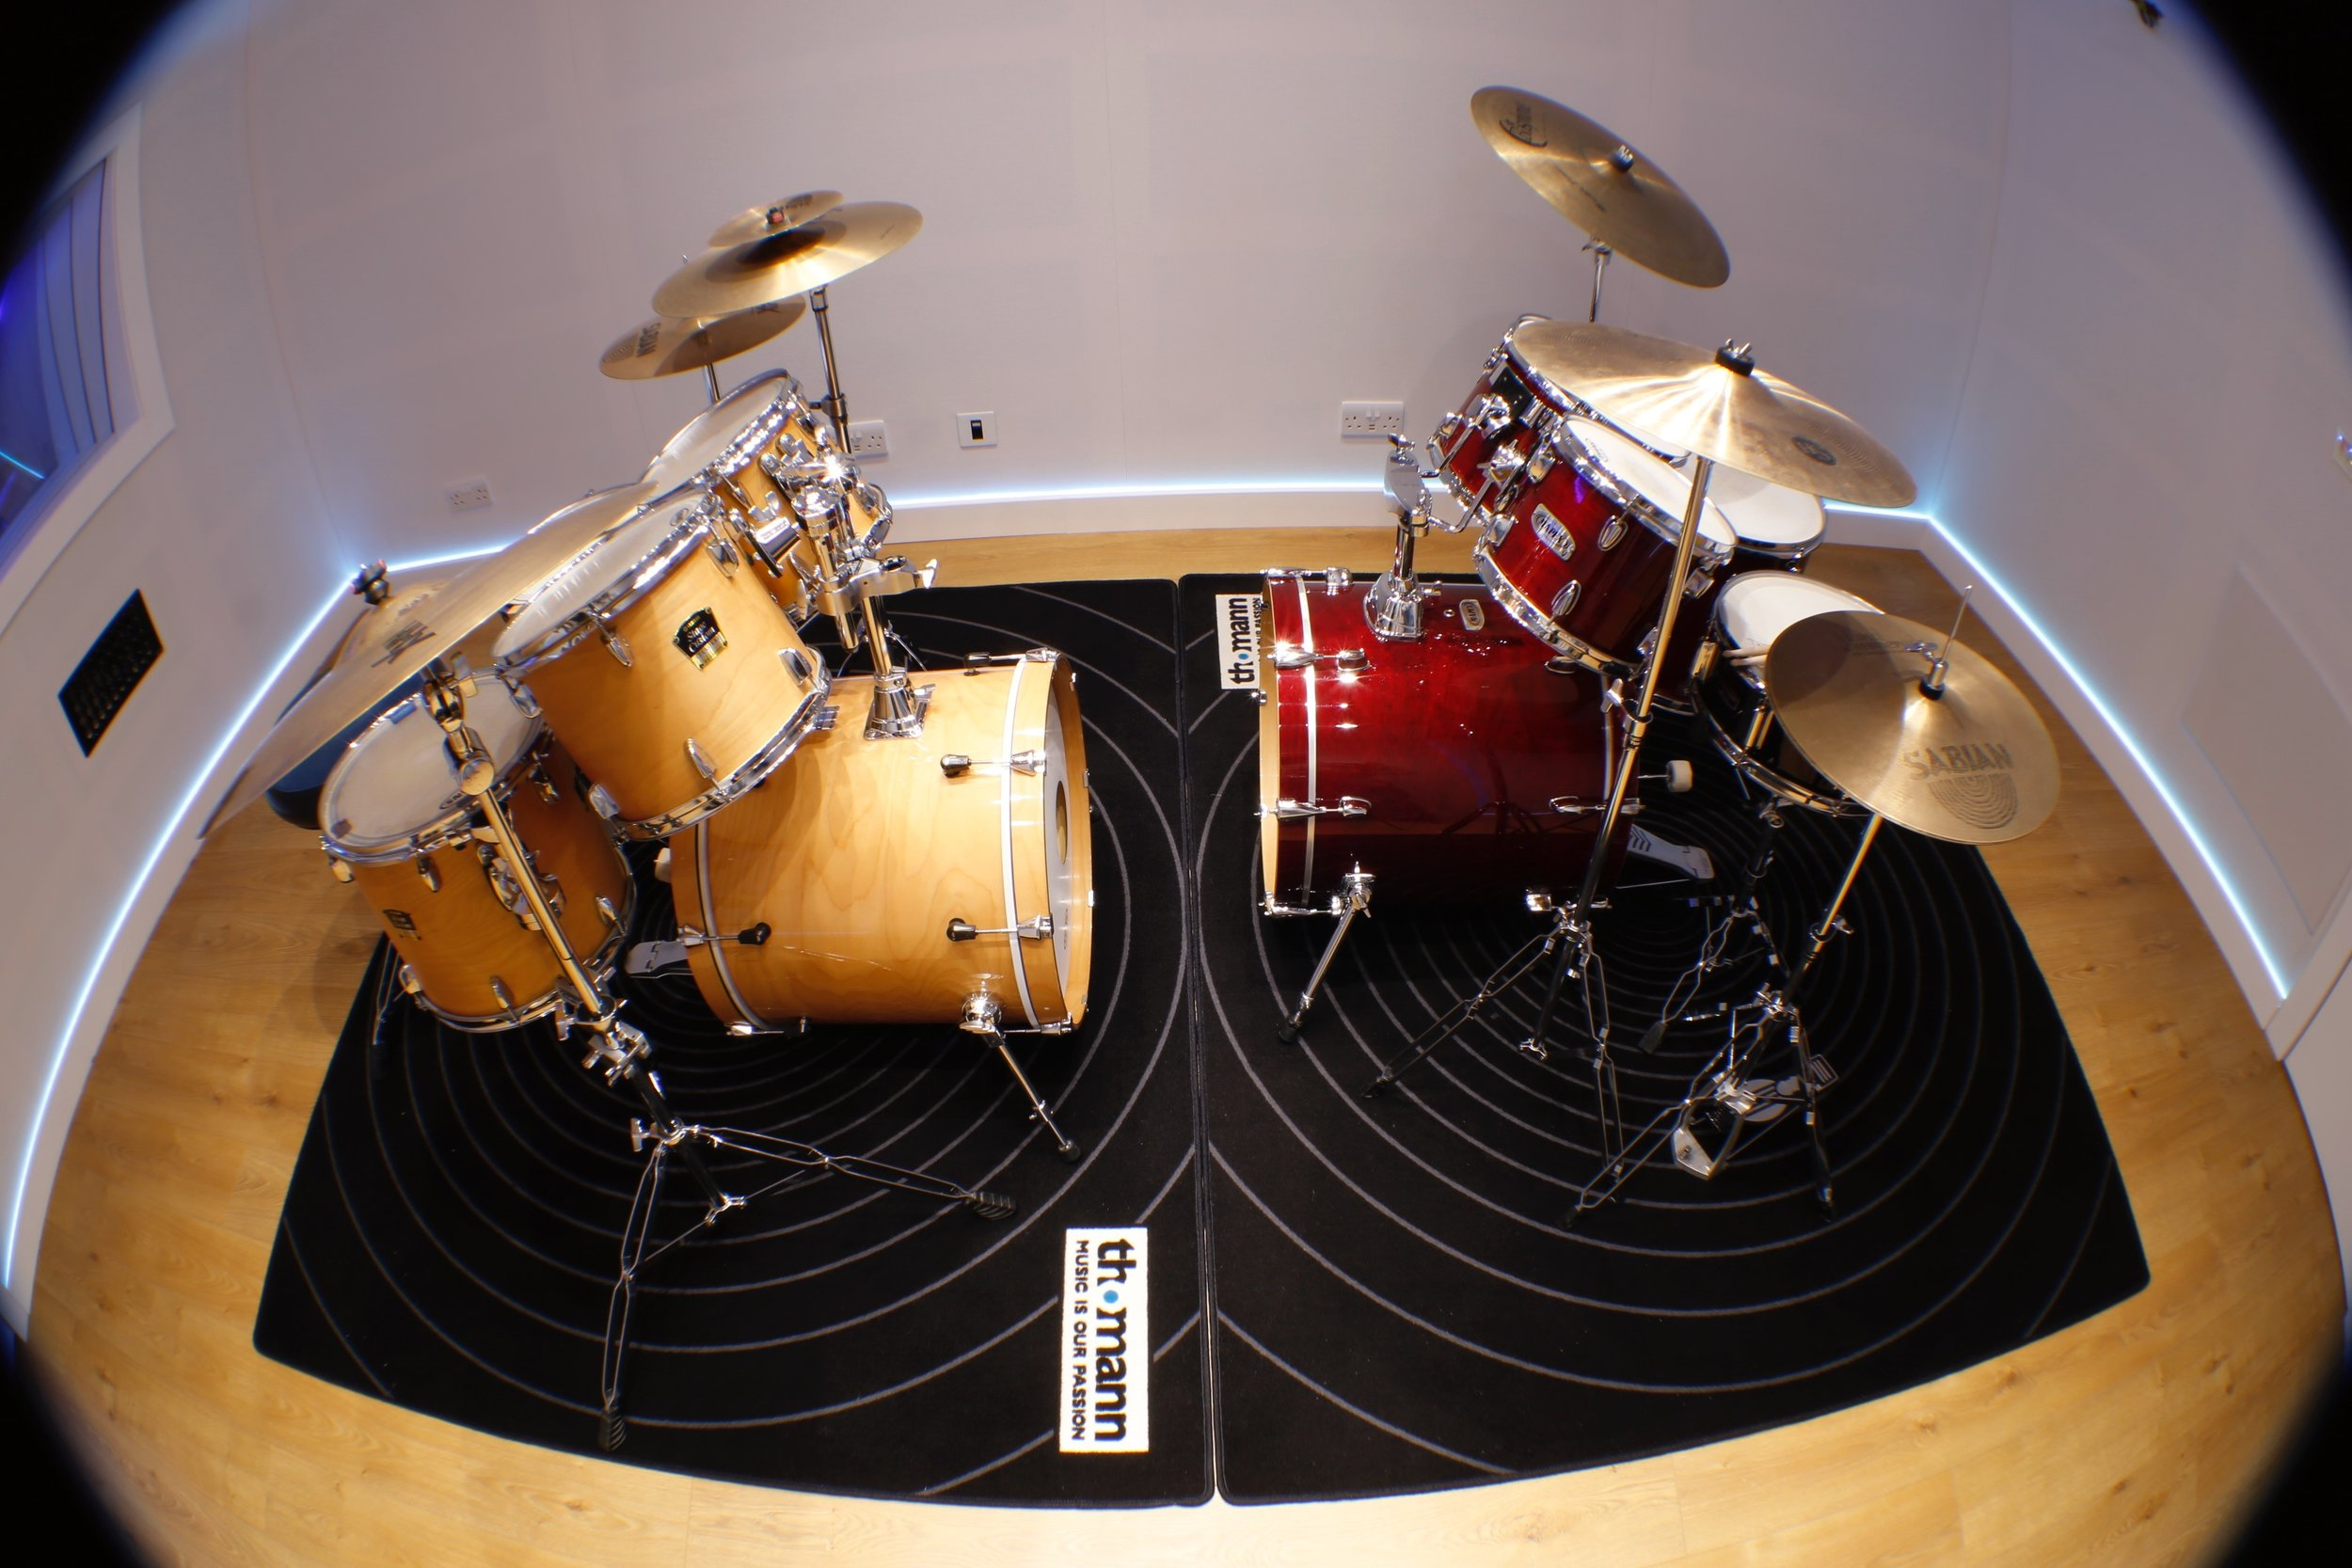 DRUM LESSONS - One to one, five days per week, beginners and advanced.Discount on trial lesson and all practices.Gift vouchers available.